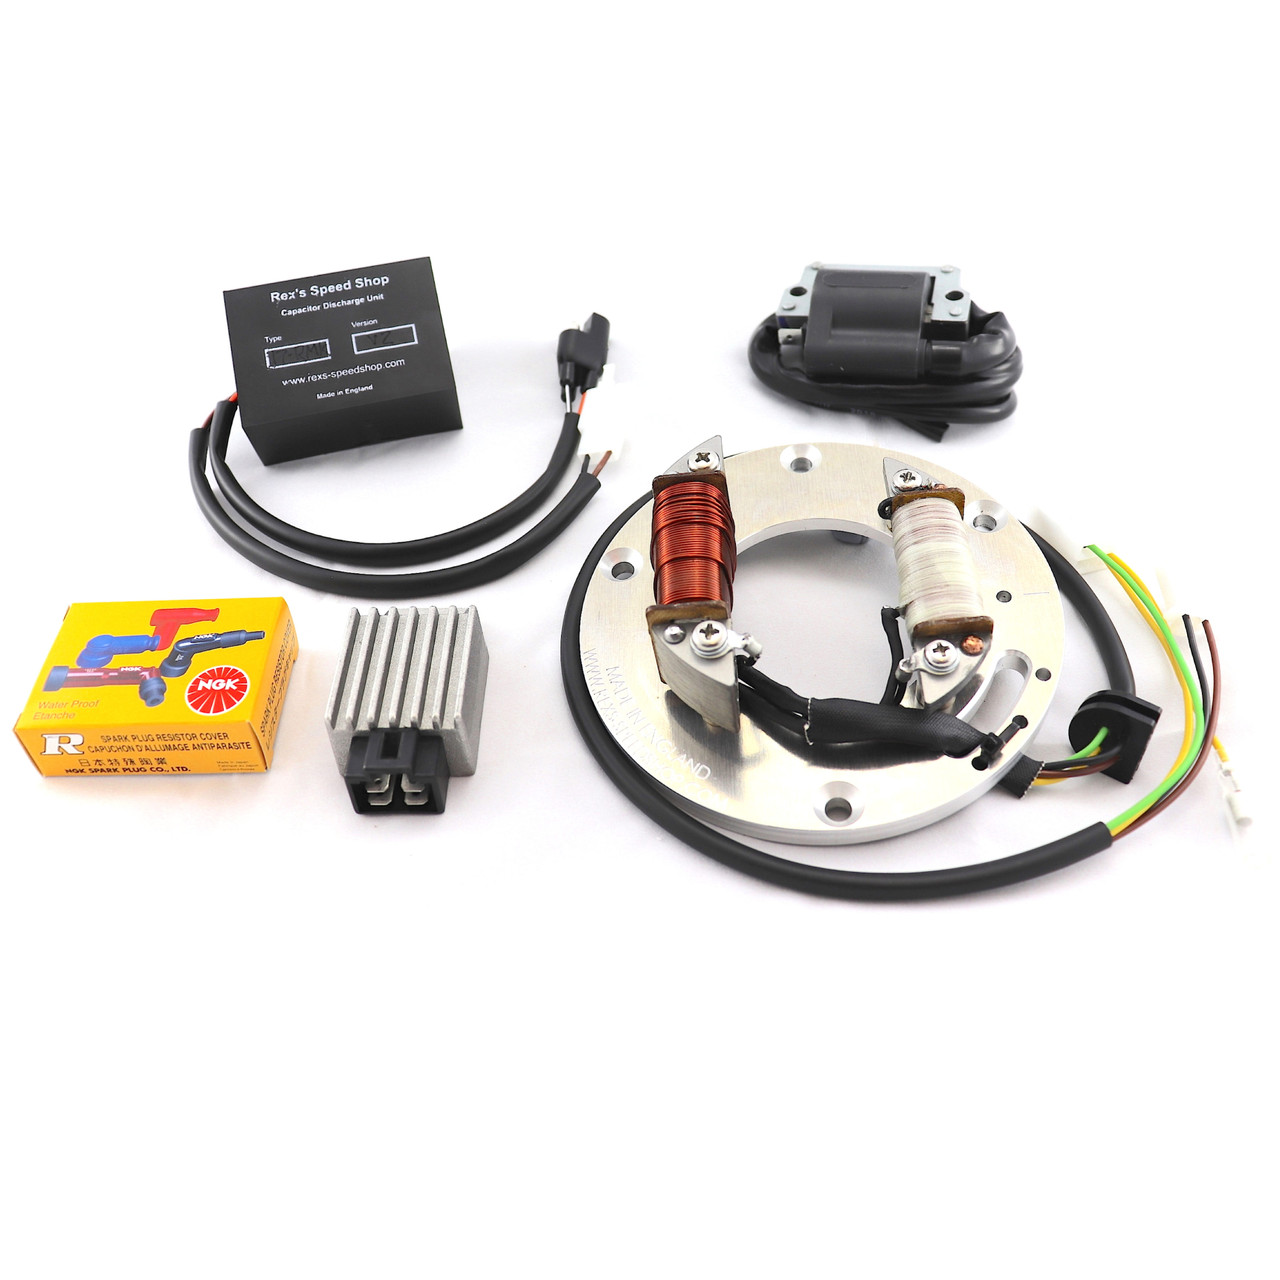 DT400 D/E Electronic Ignition with 12 volt Lighting